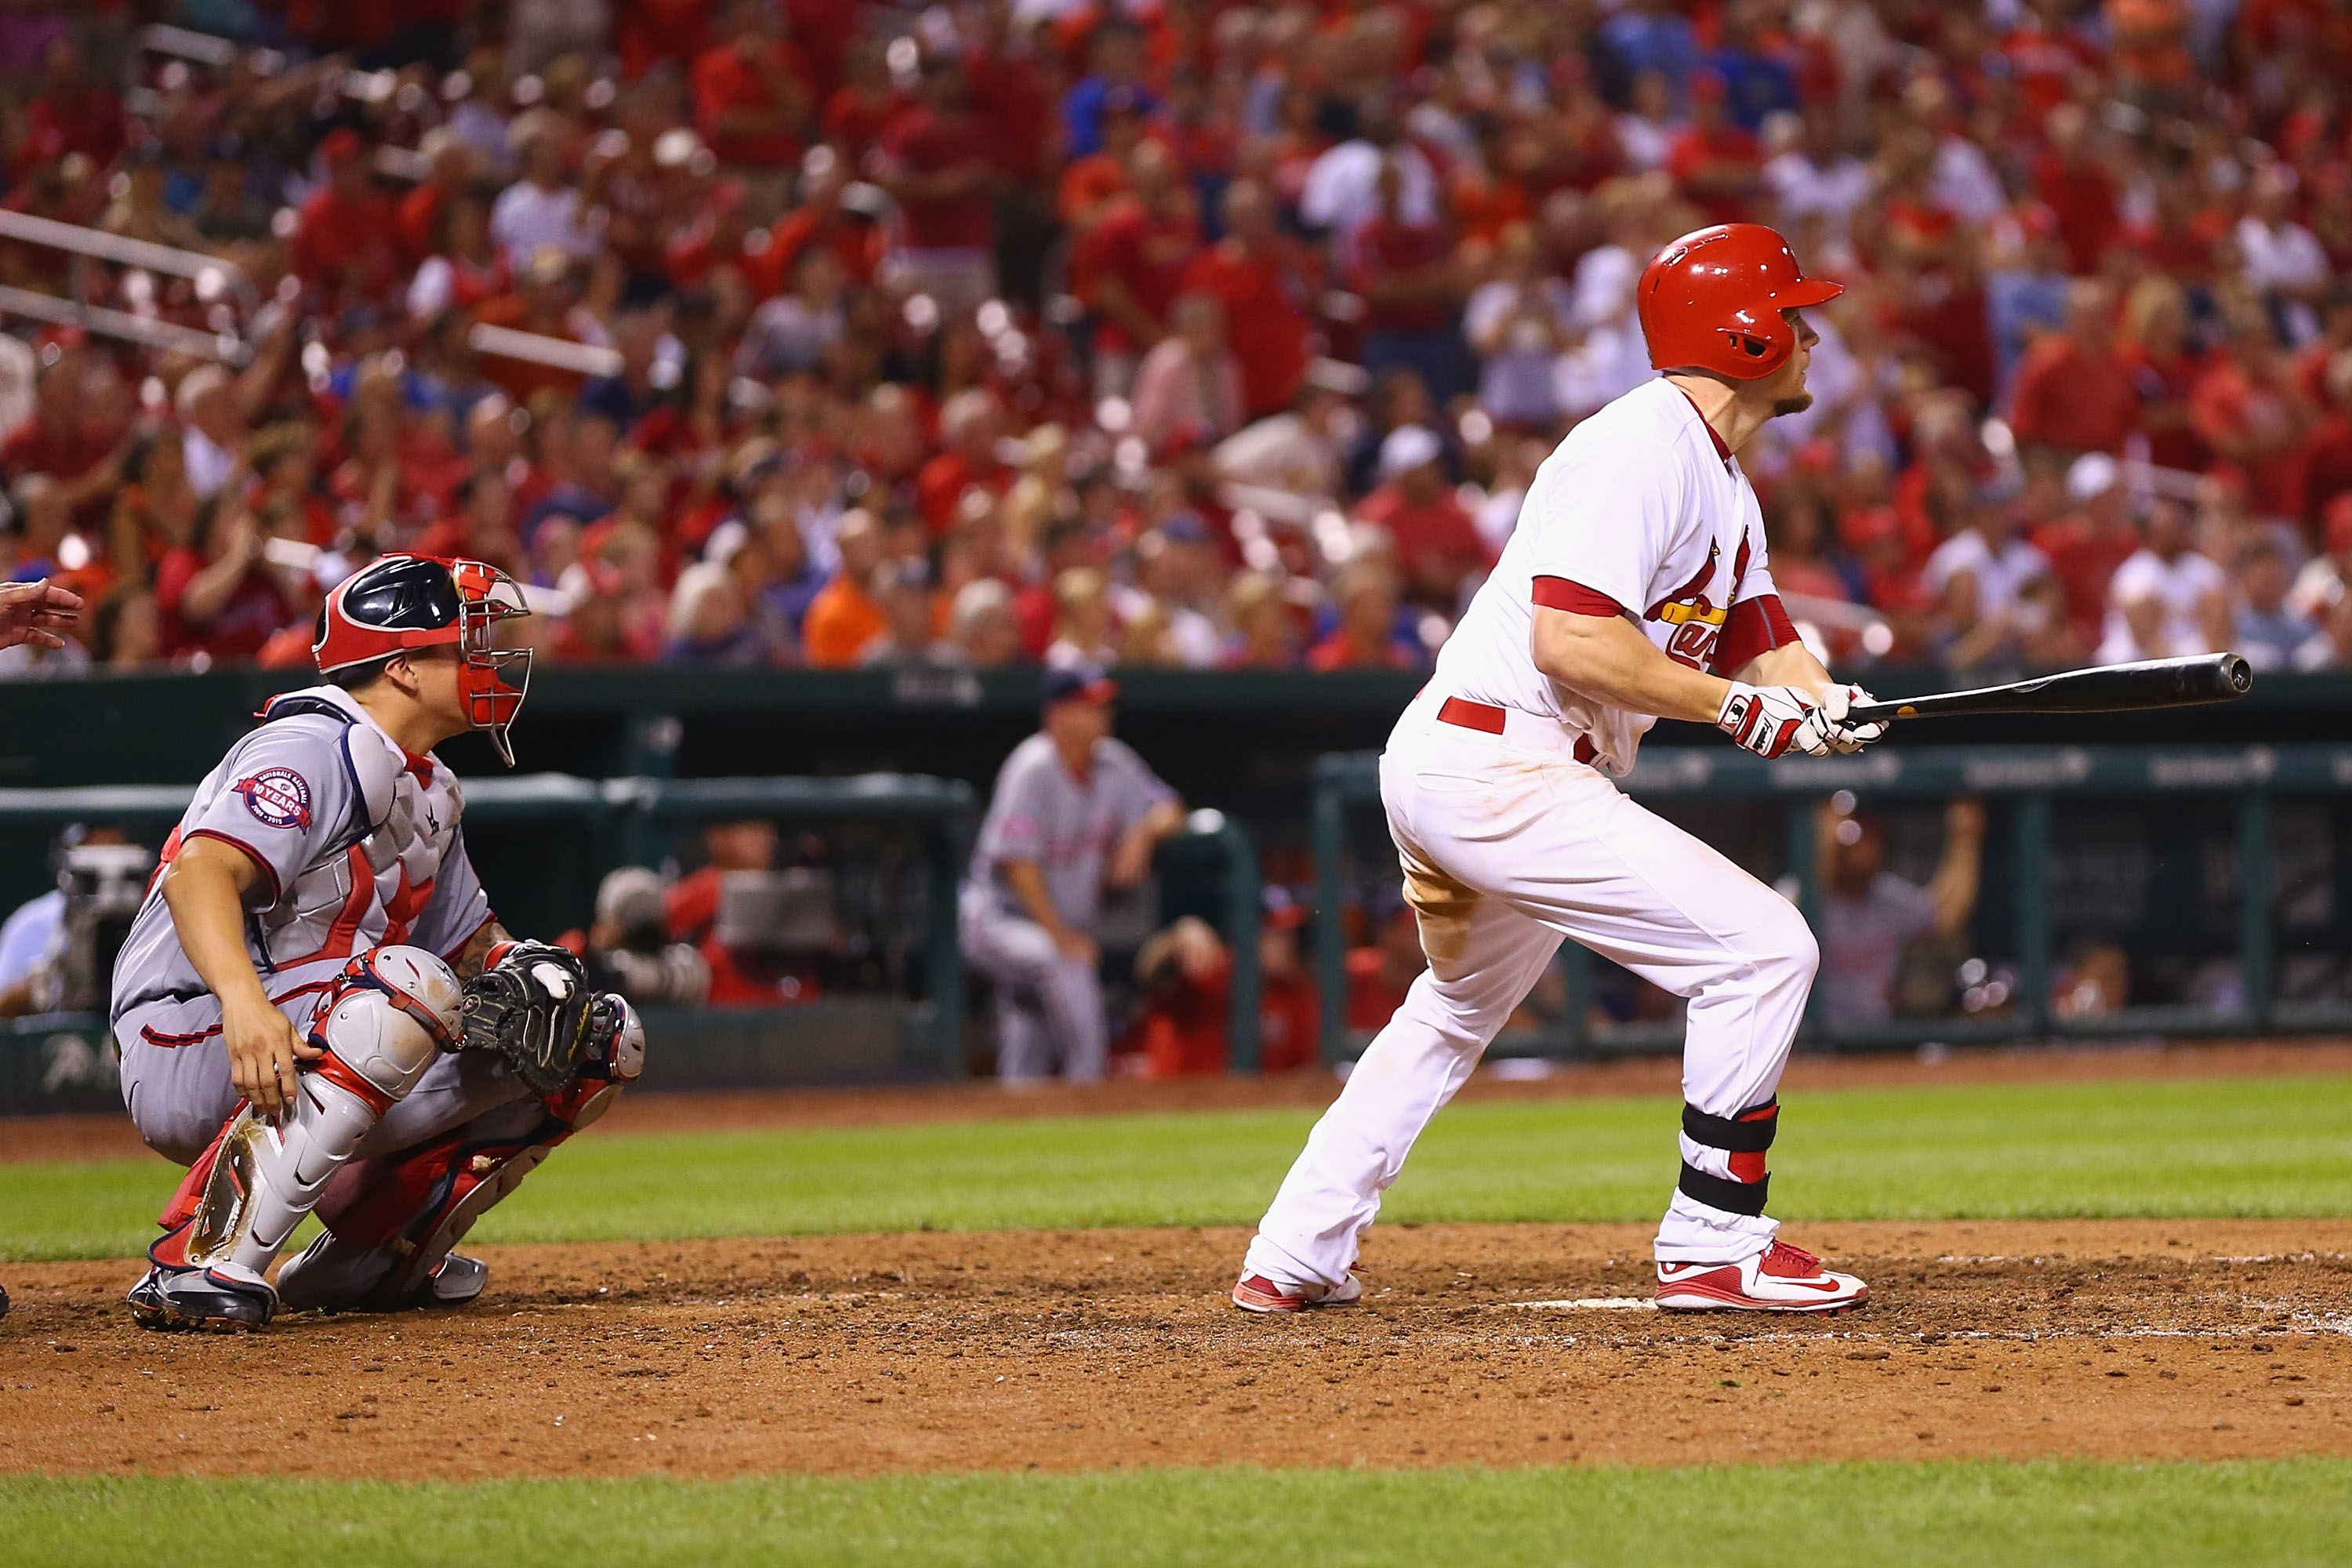 For the fourth time in the past week, the Nats let a winnable game slip through their fingers. They remain 6.5 games back of the Mets.